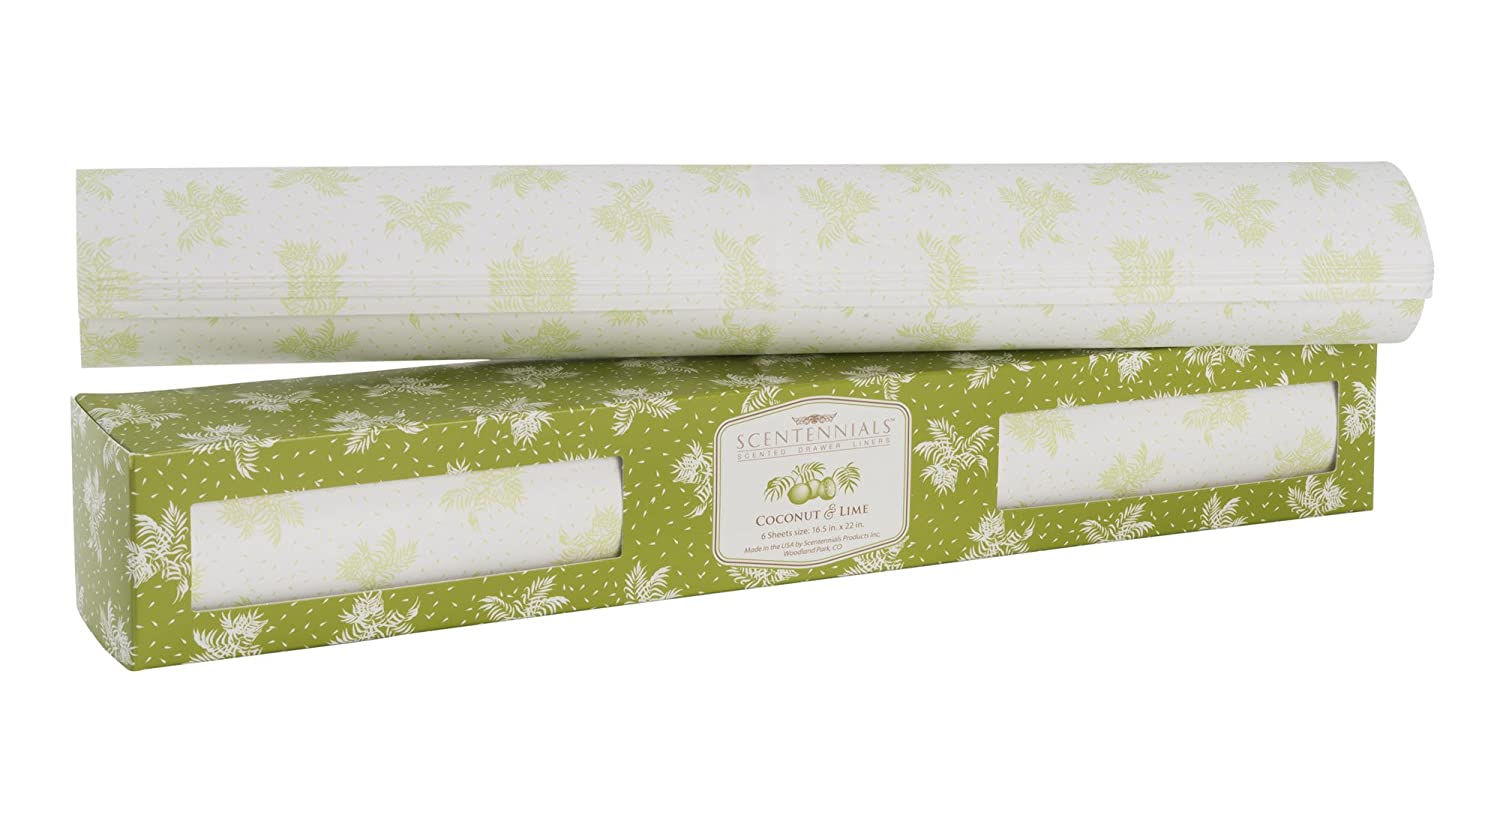 Coconut & Lime Scented Drawer Liner from Scentennials Scentennials Products Premium